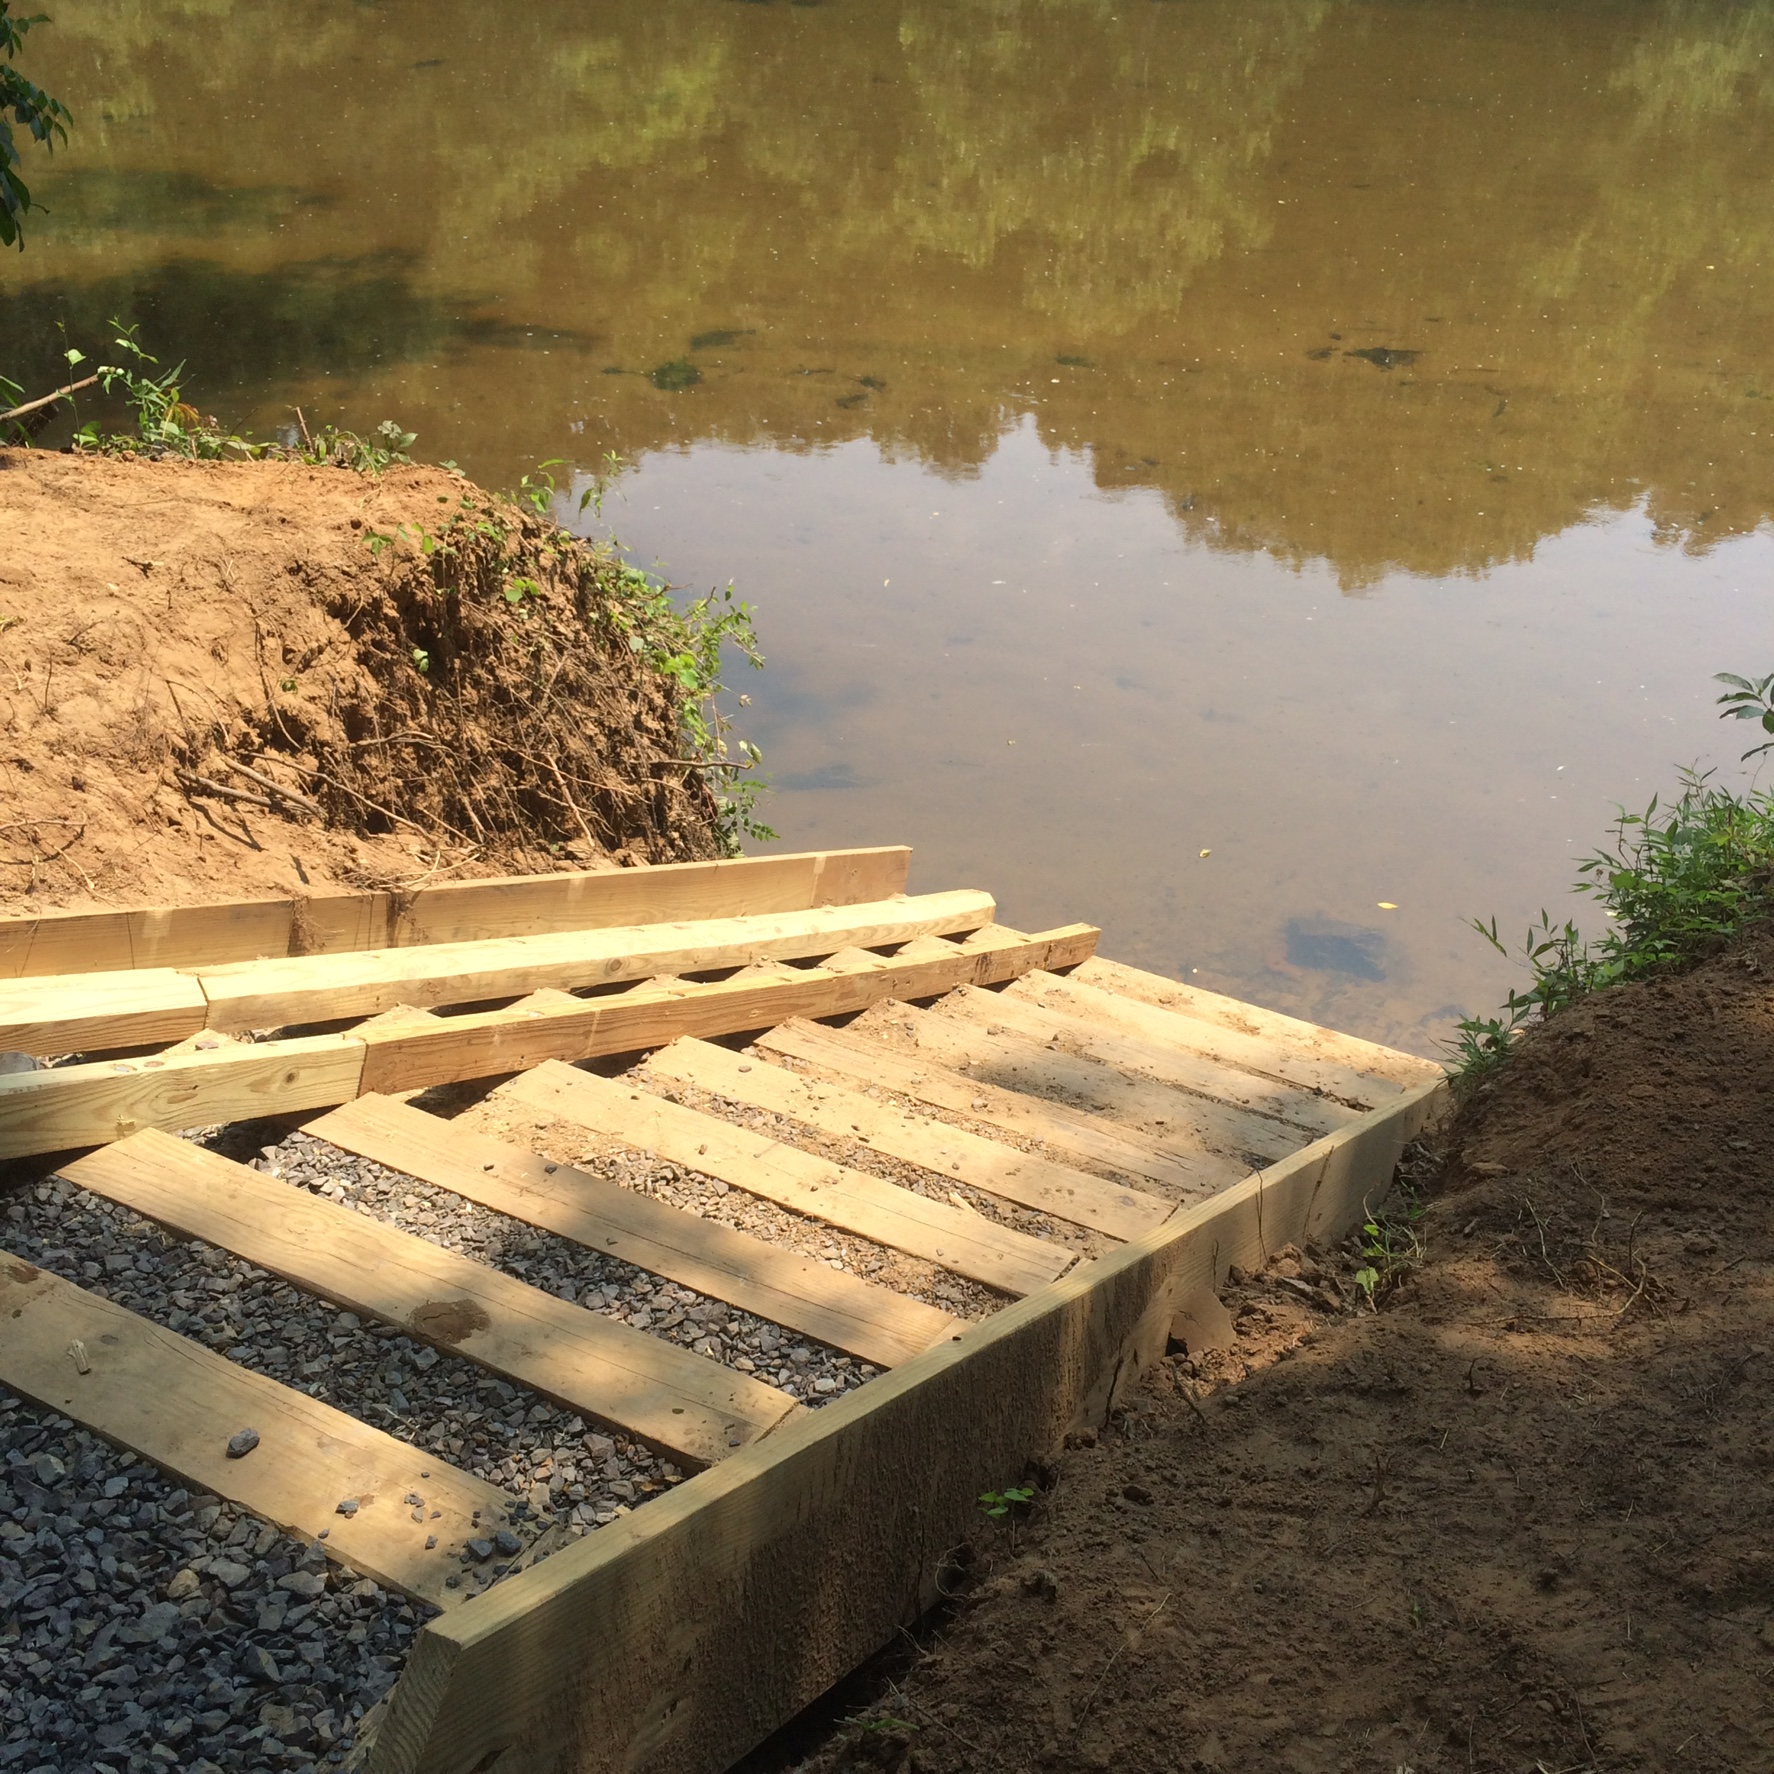 Canoe Launch Improves River Access, Reduces Bank Erosion